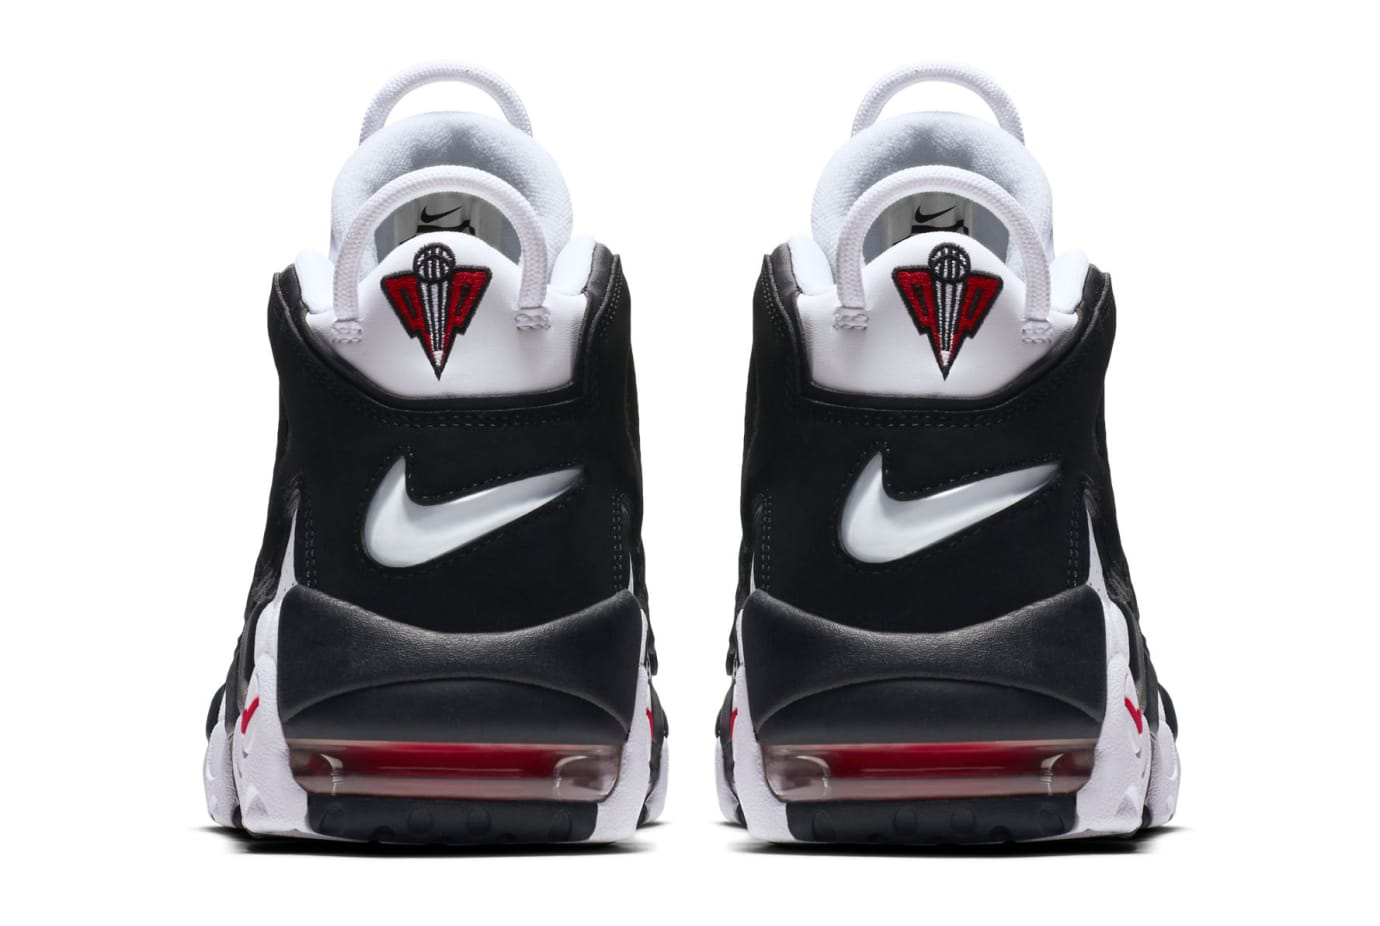 b91d2e85a79 Image via Nike US11 · Nike Air More Uptempo White Black Varsity Red Heel